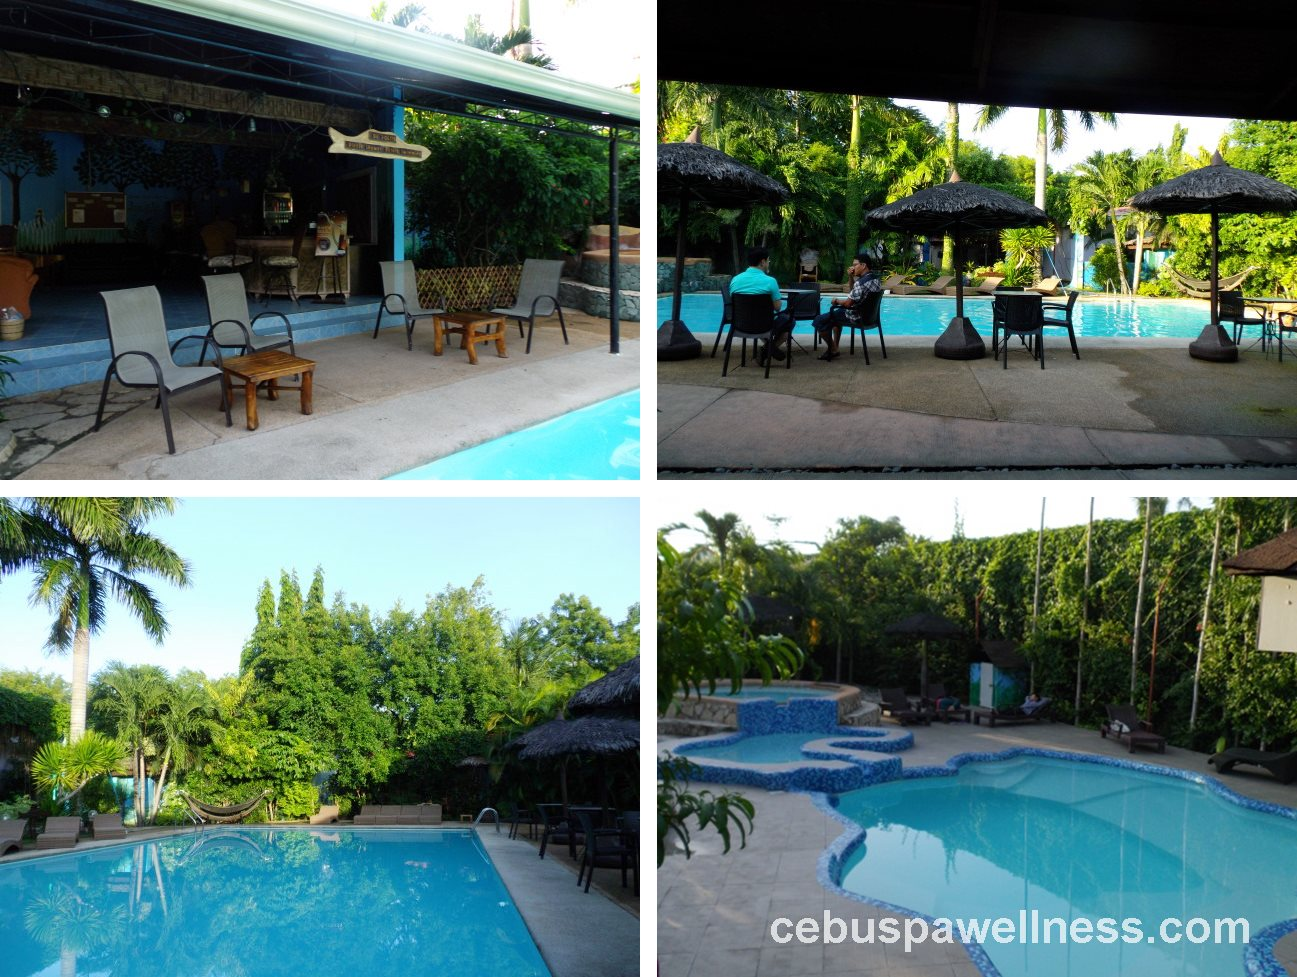 Alta Cebu Swimming Pools Cebu Spa Wellness Guide